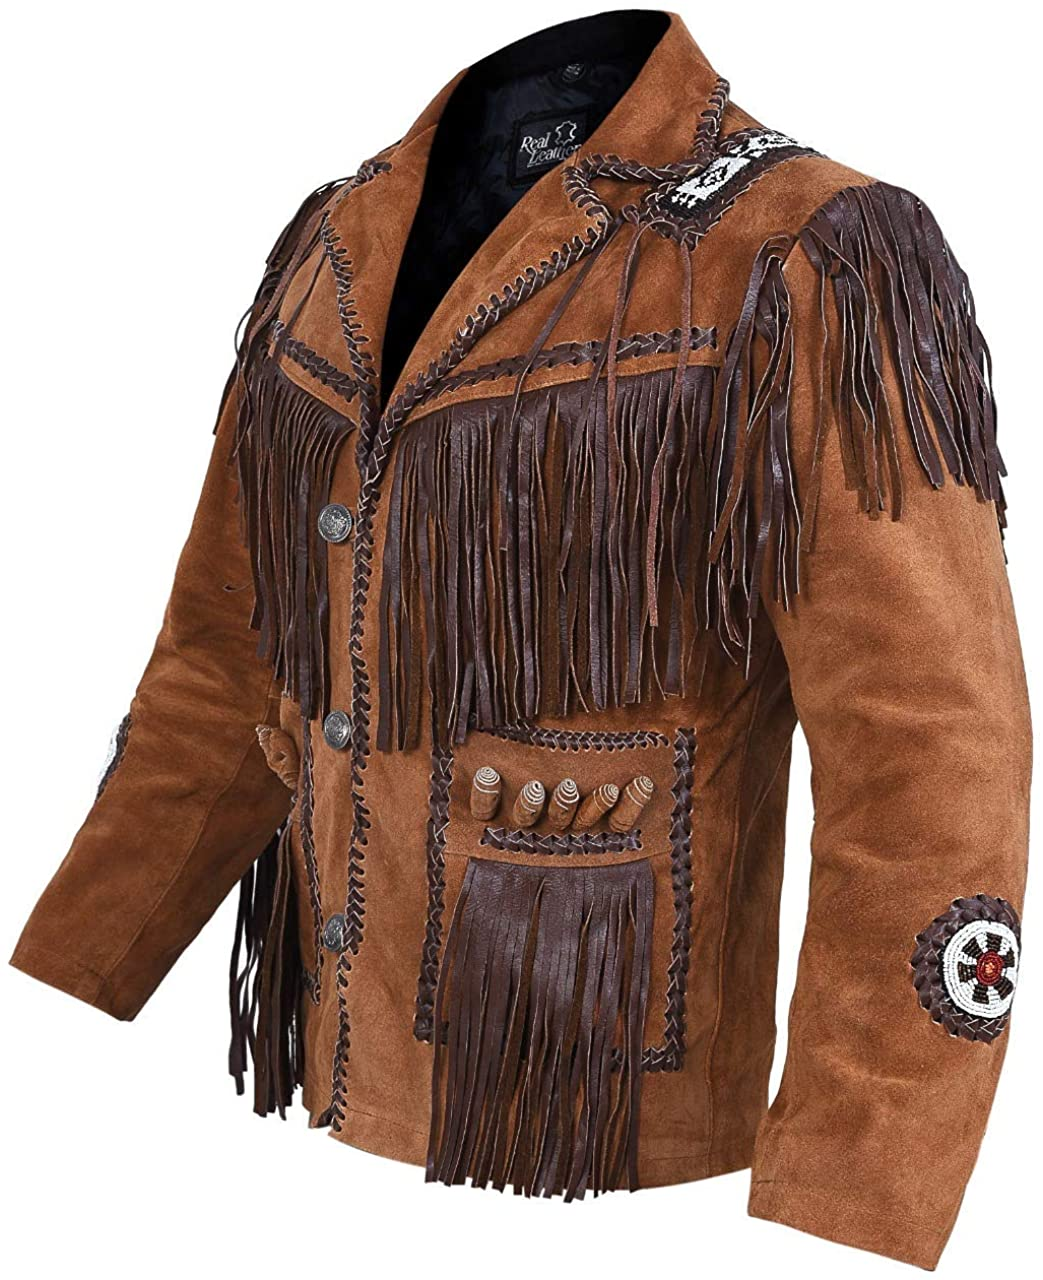 Mens Cowboy Western Suede Leather Jacket with Bones Beads Fringes- Bikers Style Mens Classic Fashion.